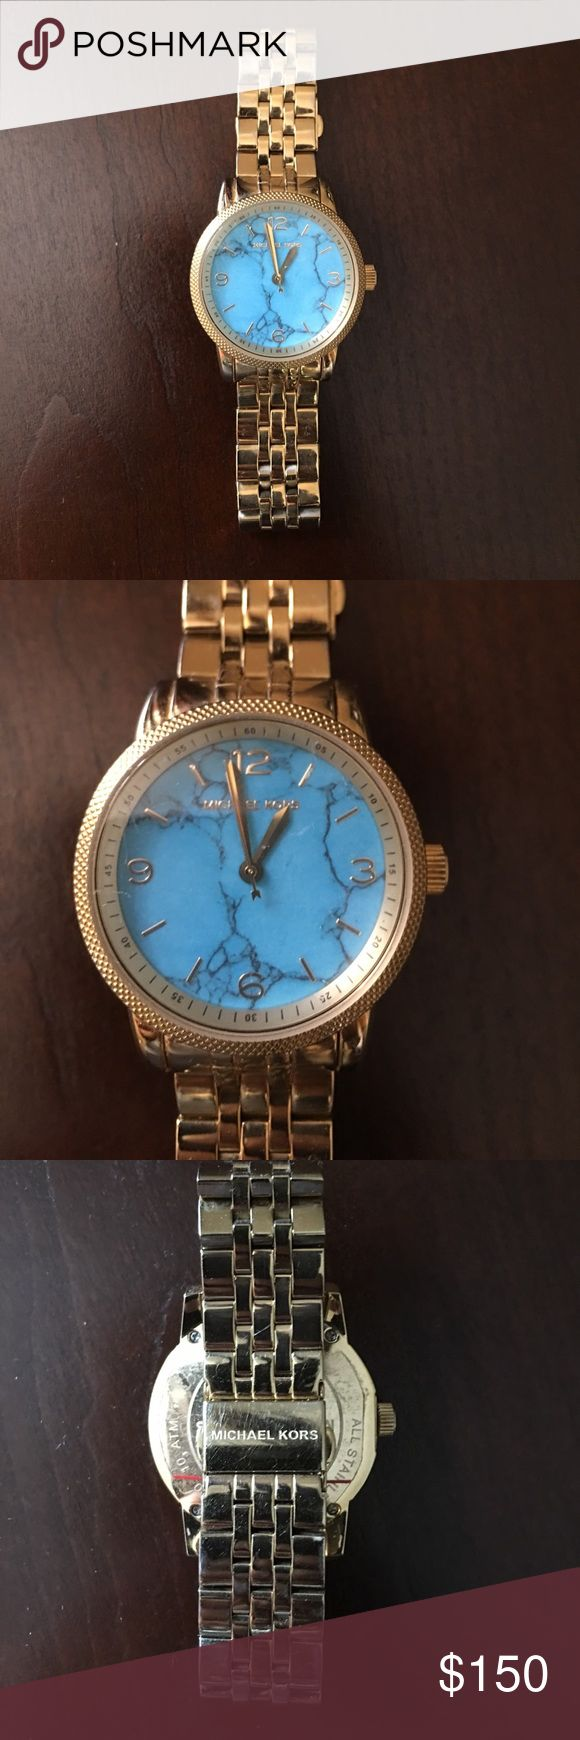 Michael Kors Gold Watch - Teal Face Very unique MK Gold Watch w/ Teal Face. Worn but still has a lot of life left. Minor scratches that are not noticed when worn. Needs battery. I bought this in Vegas a few years back but haven't worn it in a while. No Trades. Serious bidders only. Reasonable offers. Michael Kors Accessories Watches